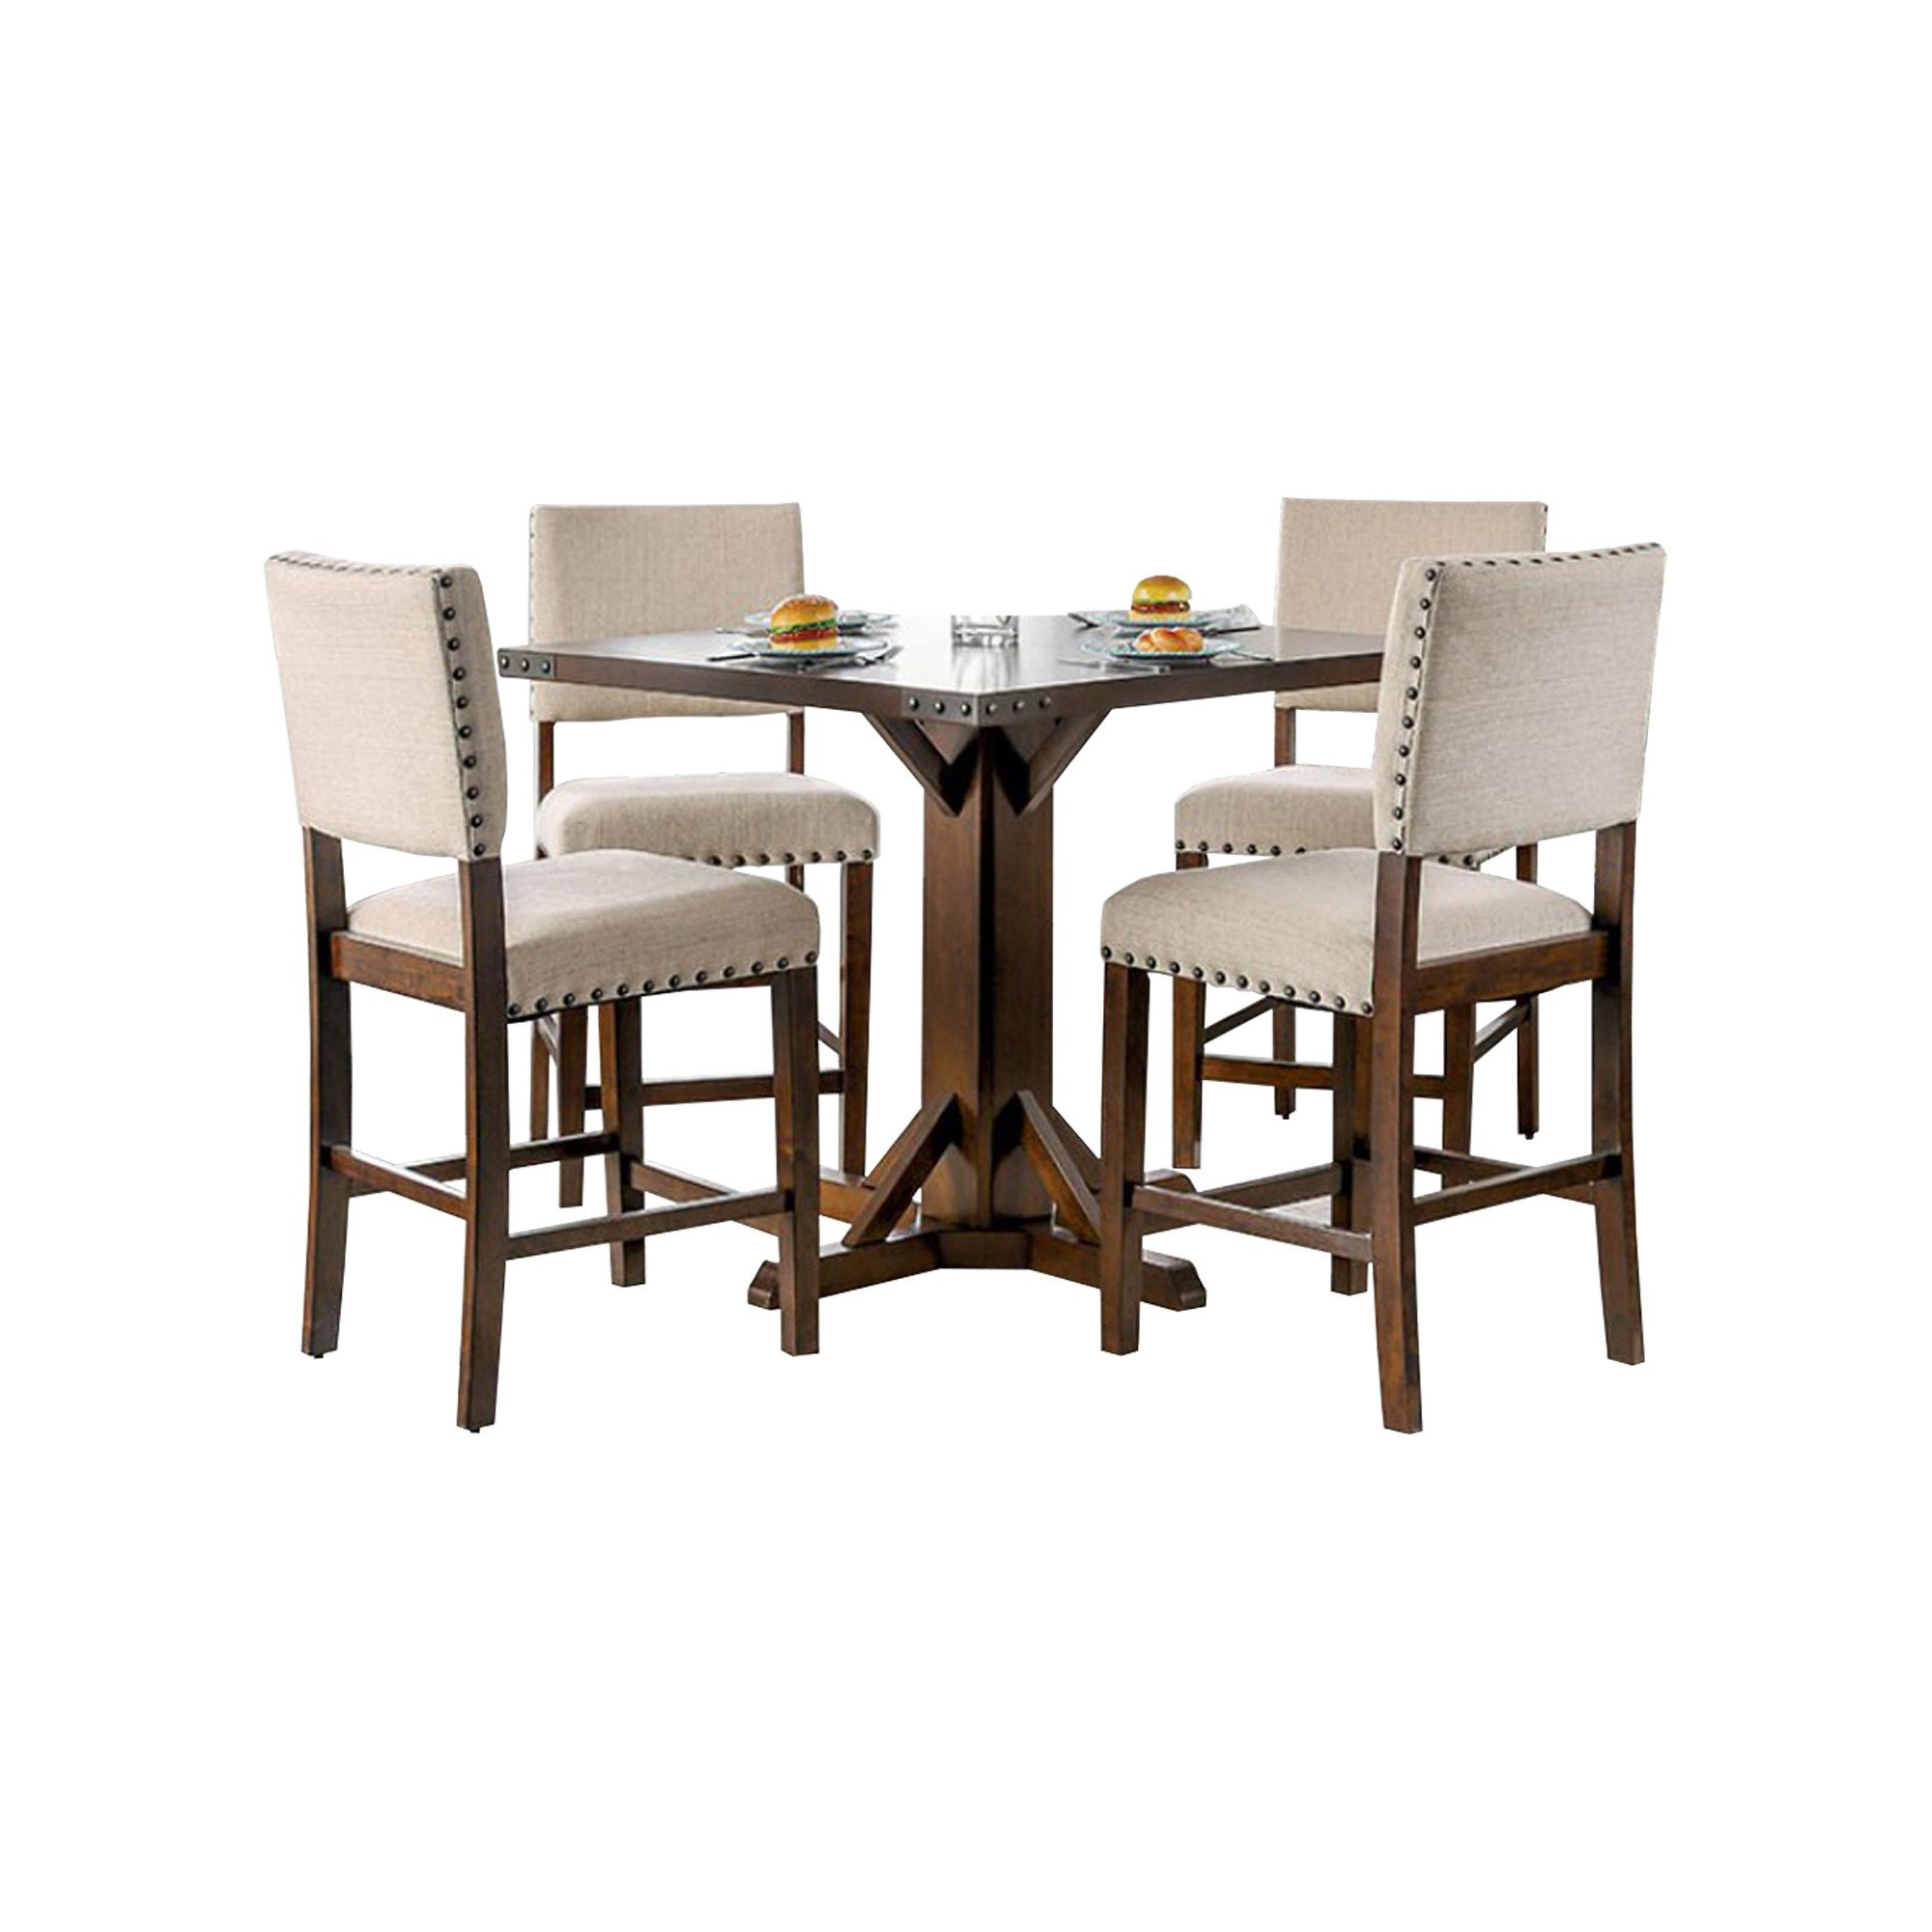 2017 Tarleton 5 Piece Dining Sets Intended For Burkitt Counter Height Solid Wood Dining Table (View 12 of 20)